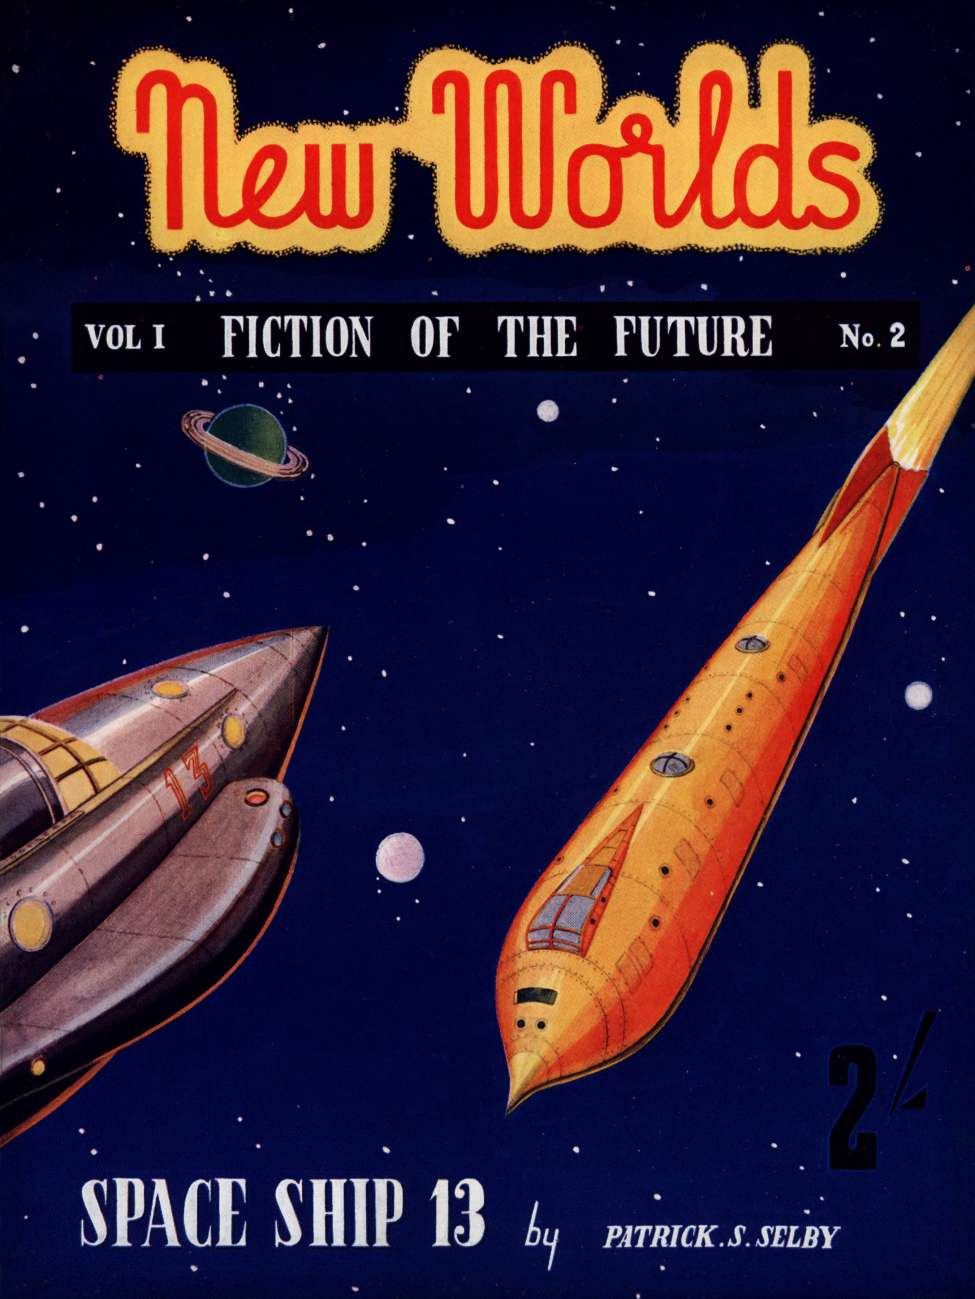 Comic Book Cover For New Worlds v01 002 - Space Ship 13 - Patrick S. Selby